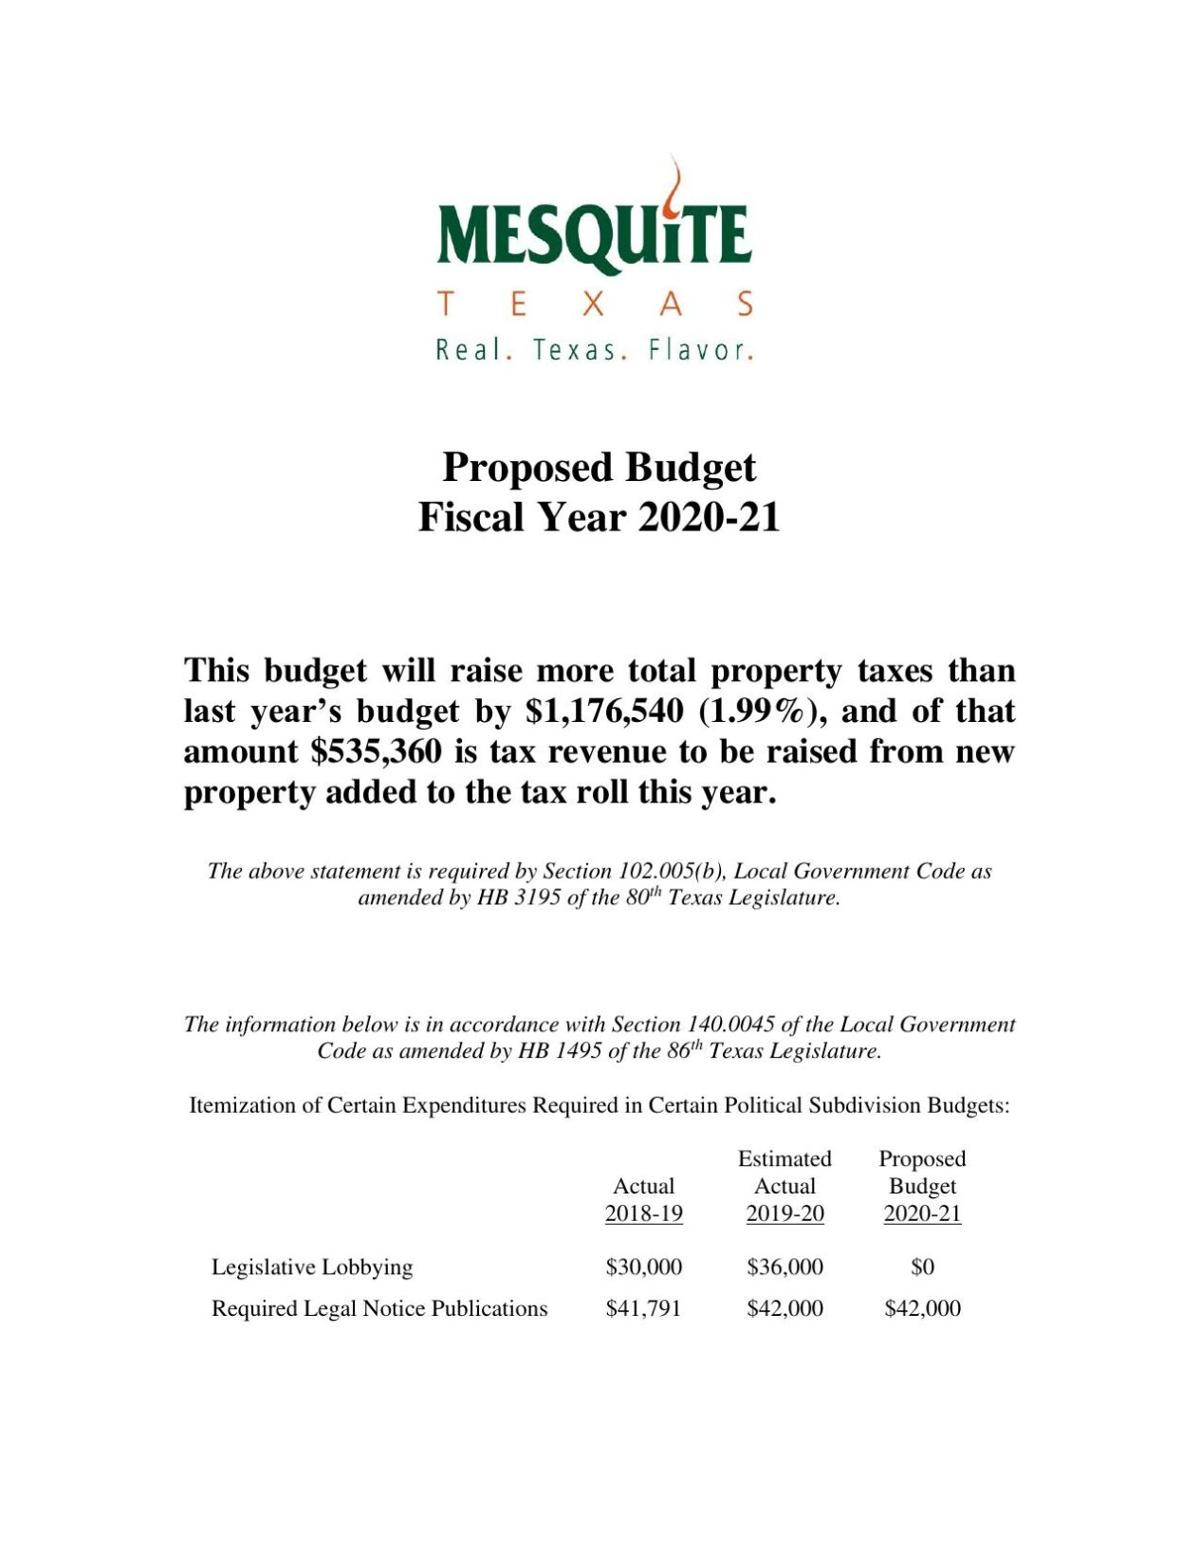 Mesquite FY2021 proposed budget